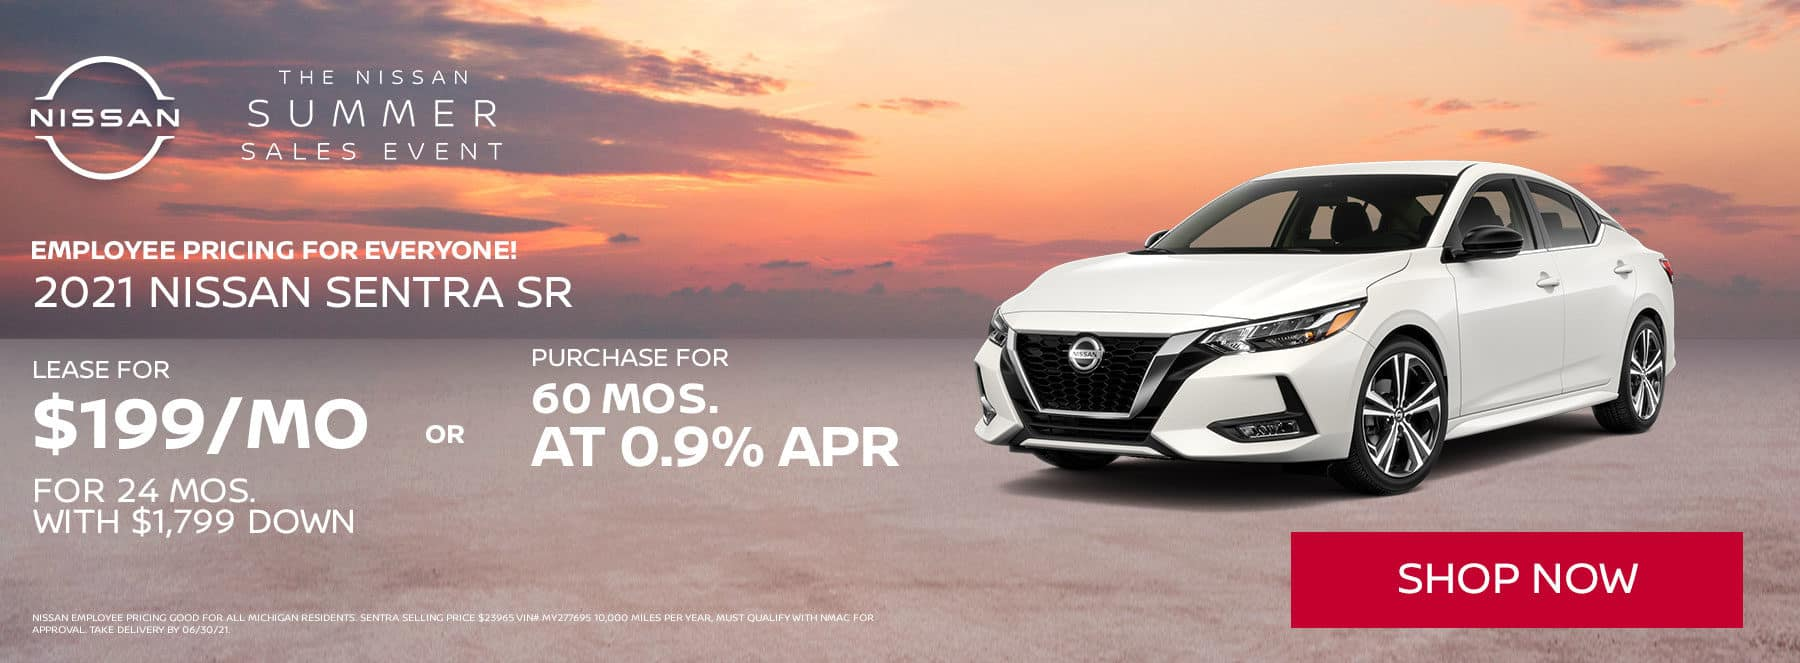 Nissan Summer Sales Event Employee pricing for everyone! Lease a 2021 Nissan Sentra SR for 24 MONTHS $199 per month with $1799 down or purchase 60 months @ 0.9%